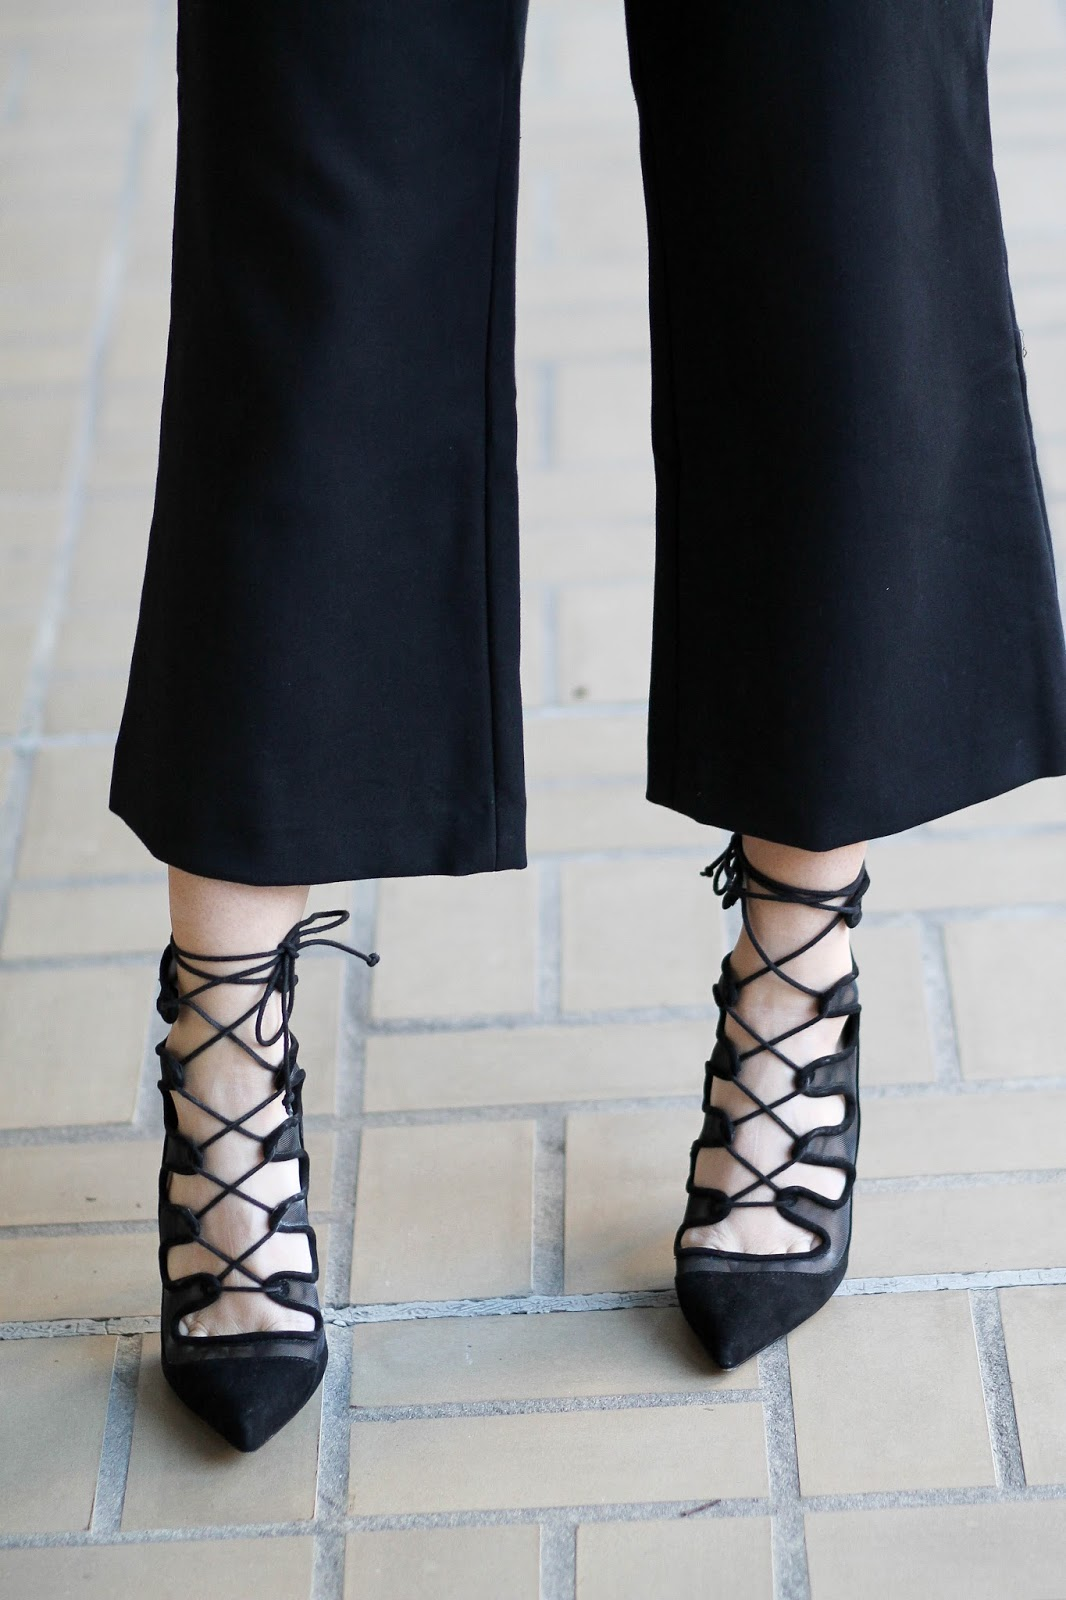 zara lace up heels, dressed4dreams